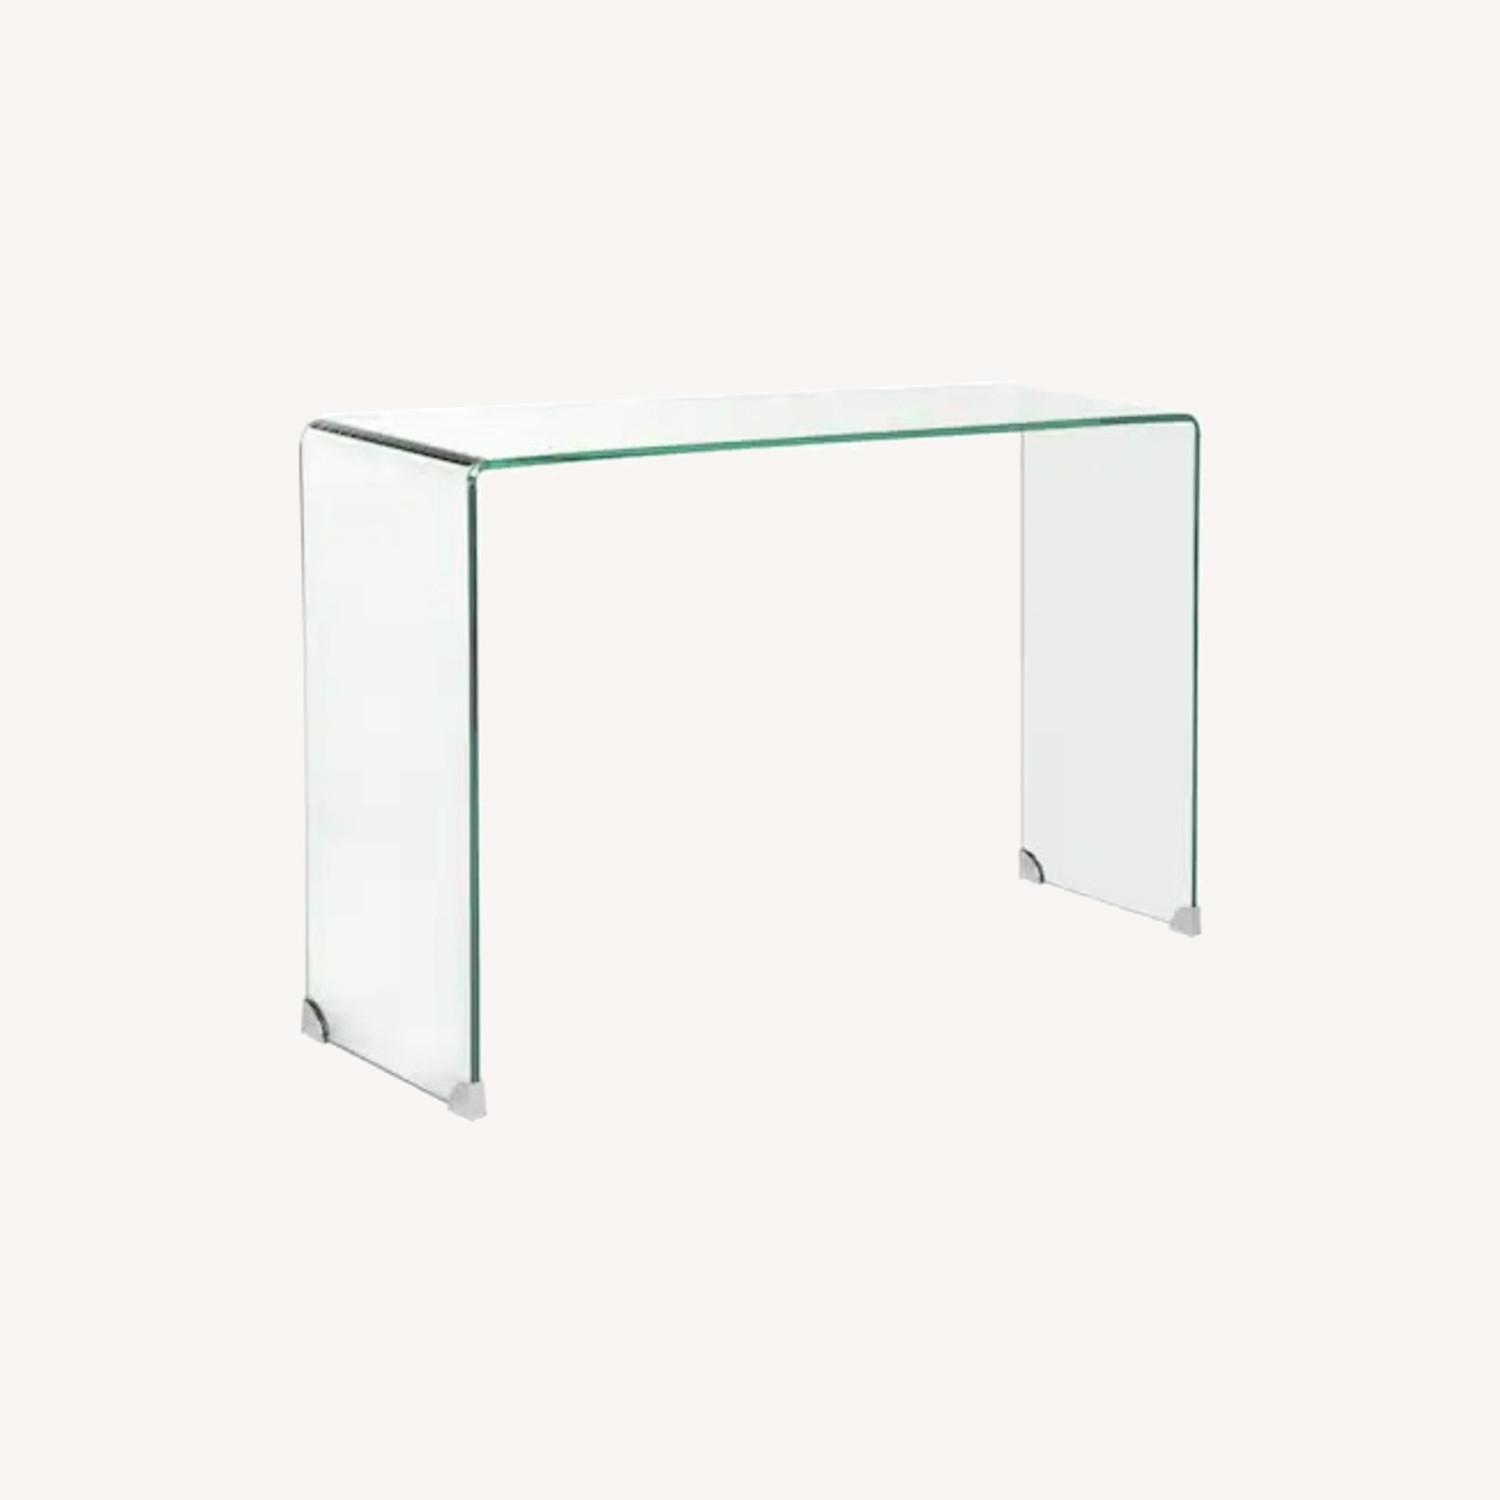 Safavieh Glass Waterfall Console Table Desk - image-0